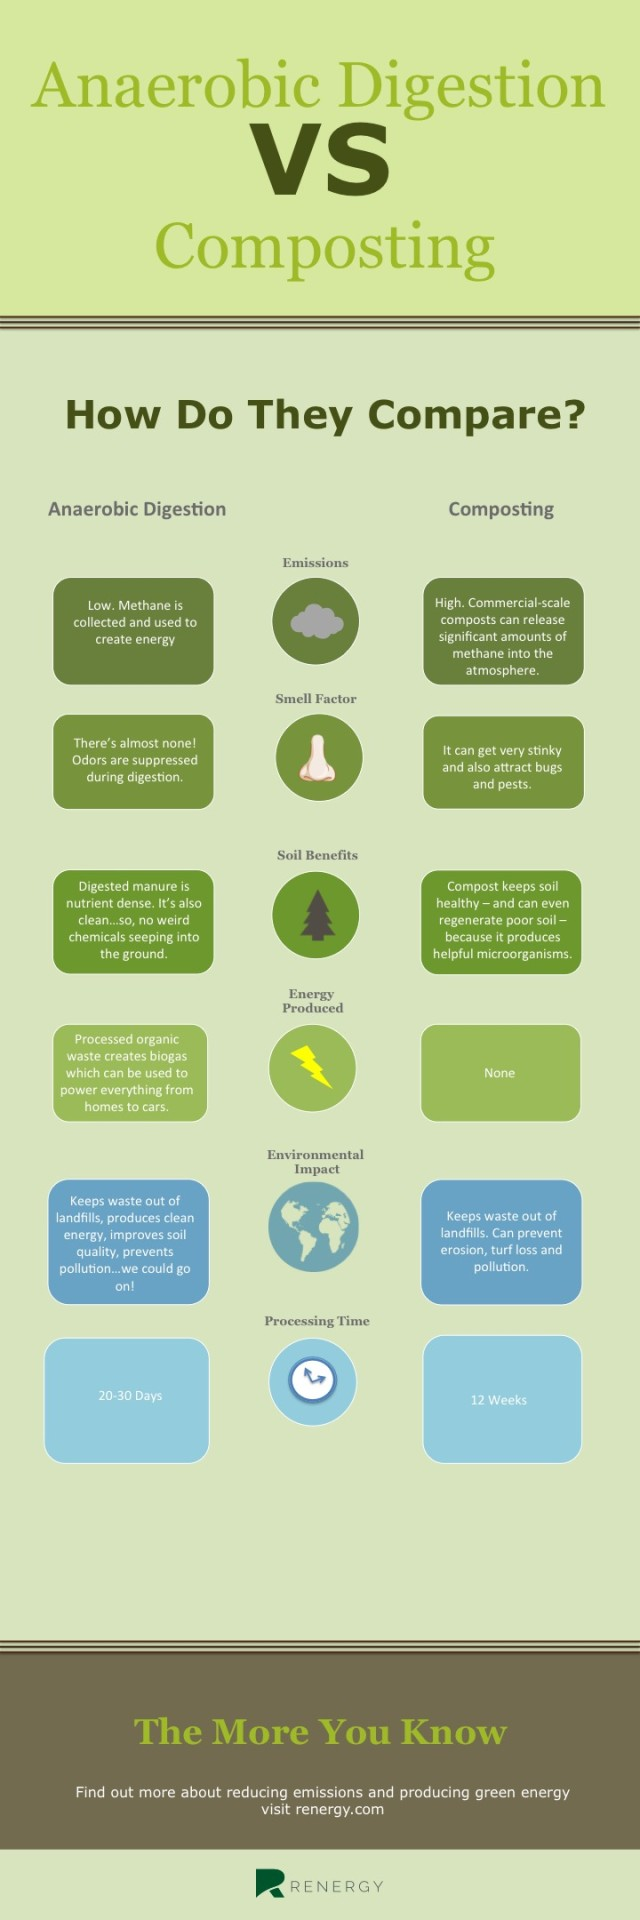 anaerobic-digestion-vs.-composting-renergy